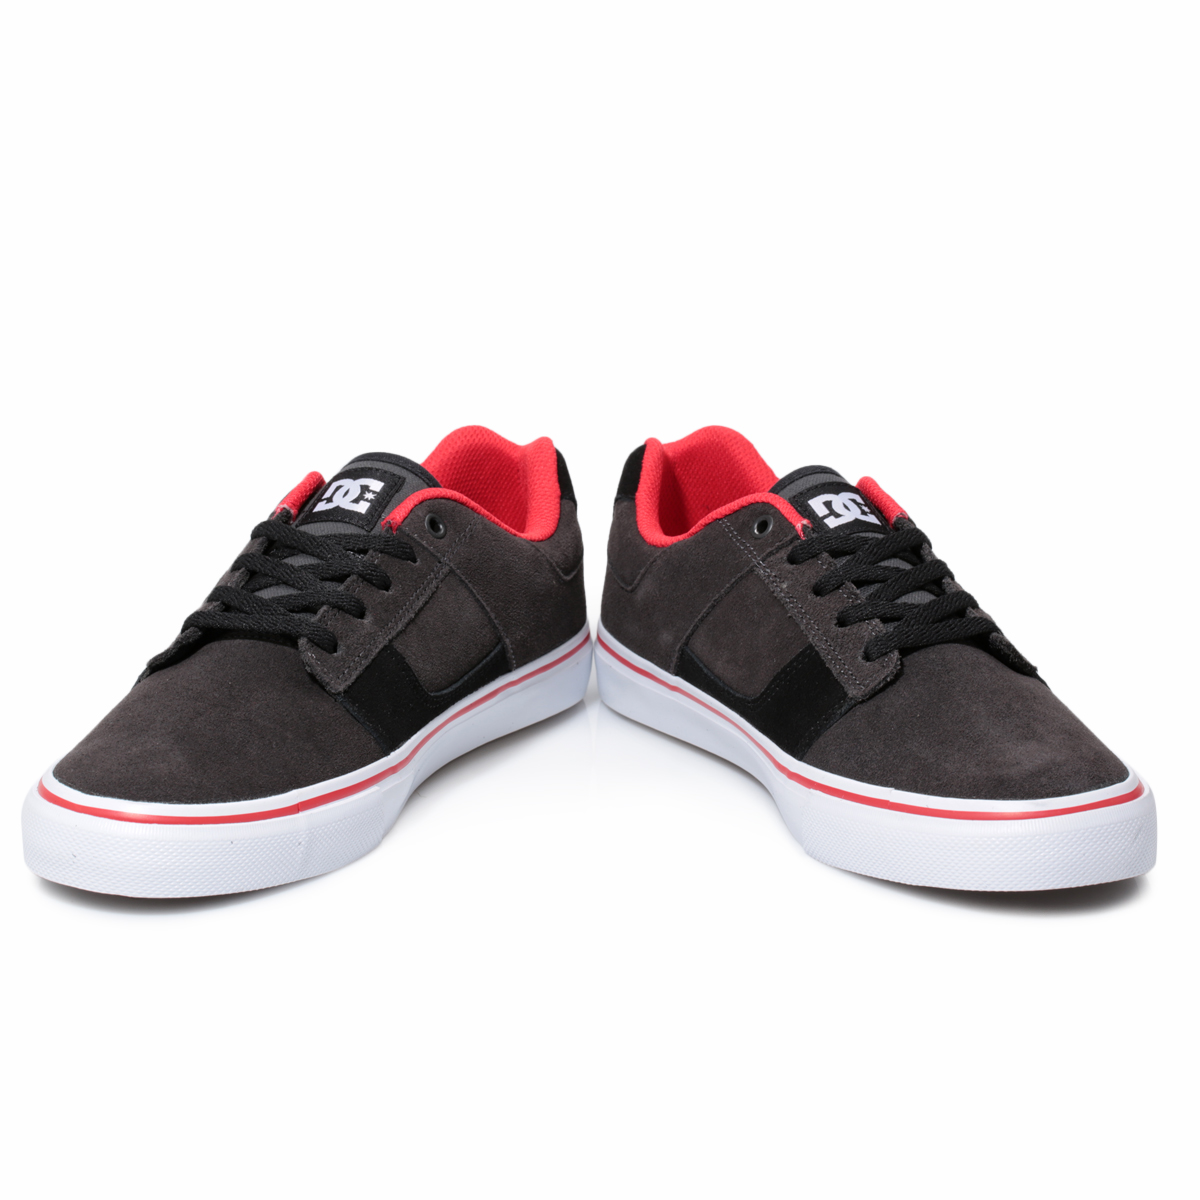 DC Shoes Bridge Suede Black Red Mens Trainers Sneakers Shoes Size ...